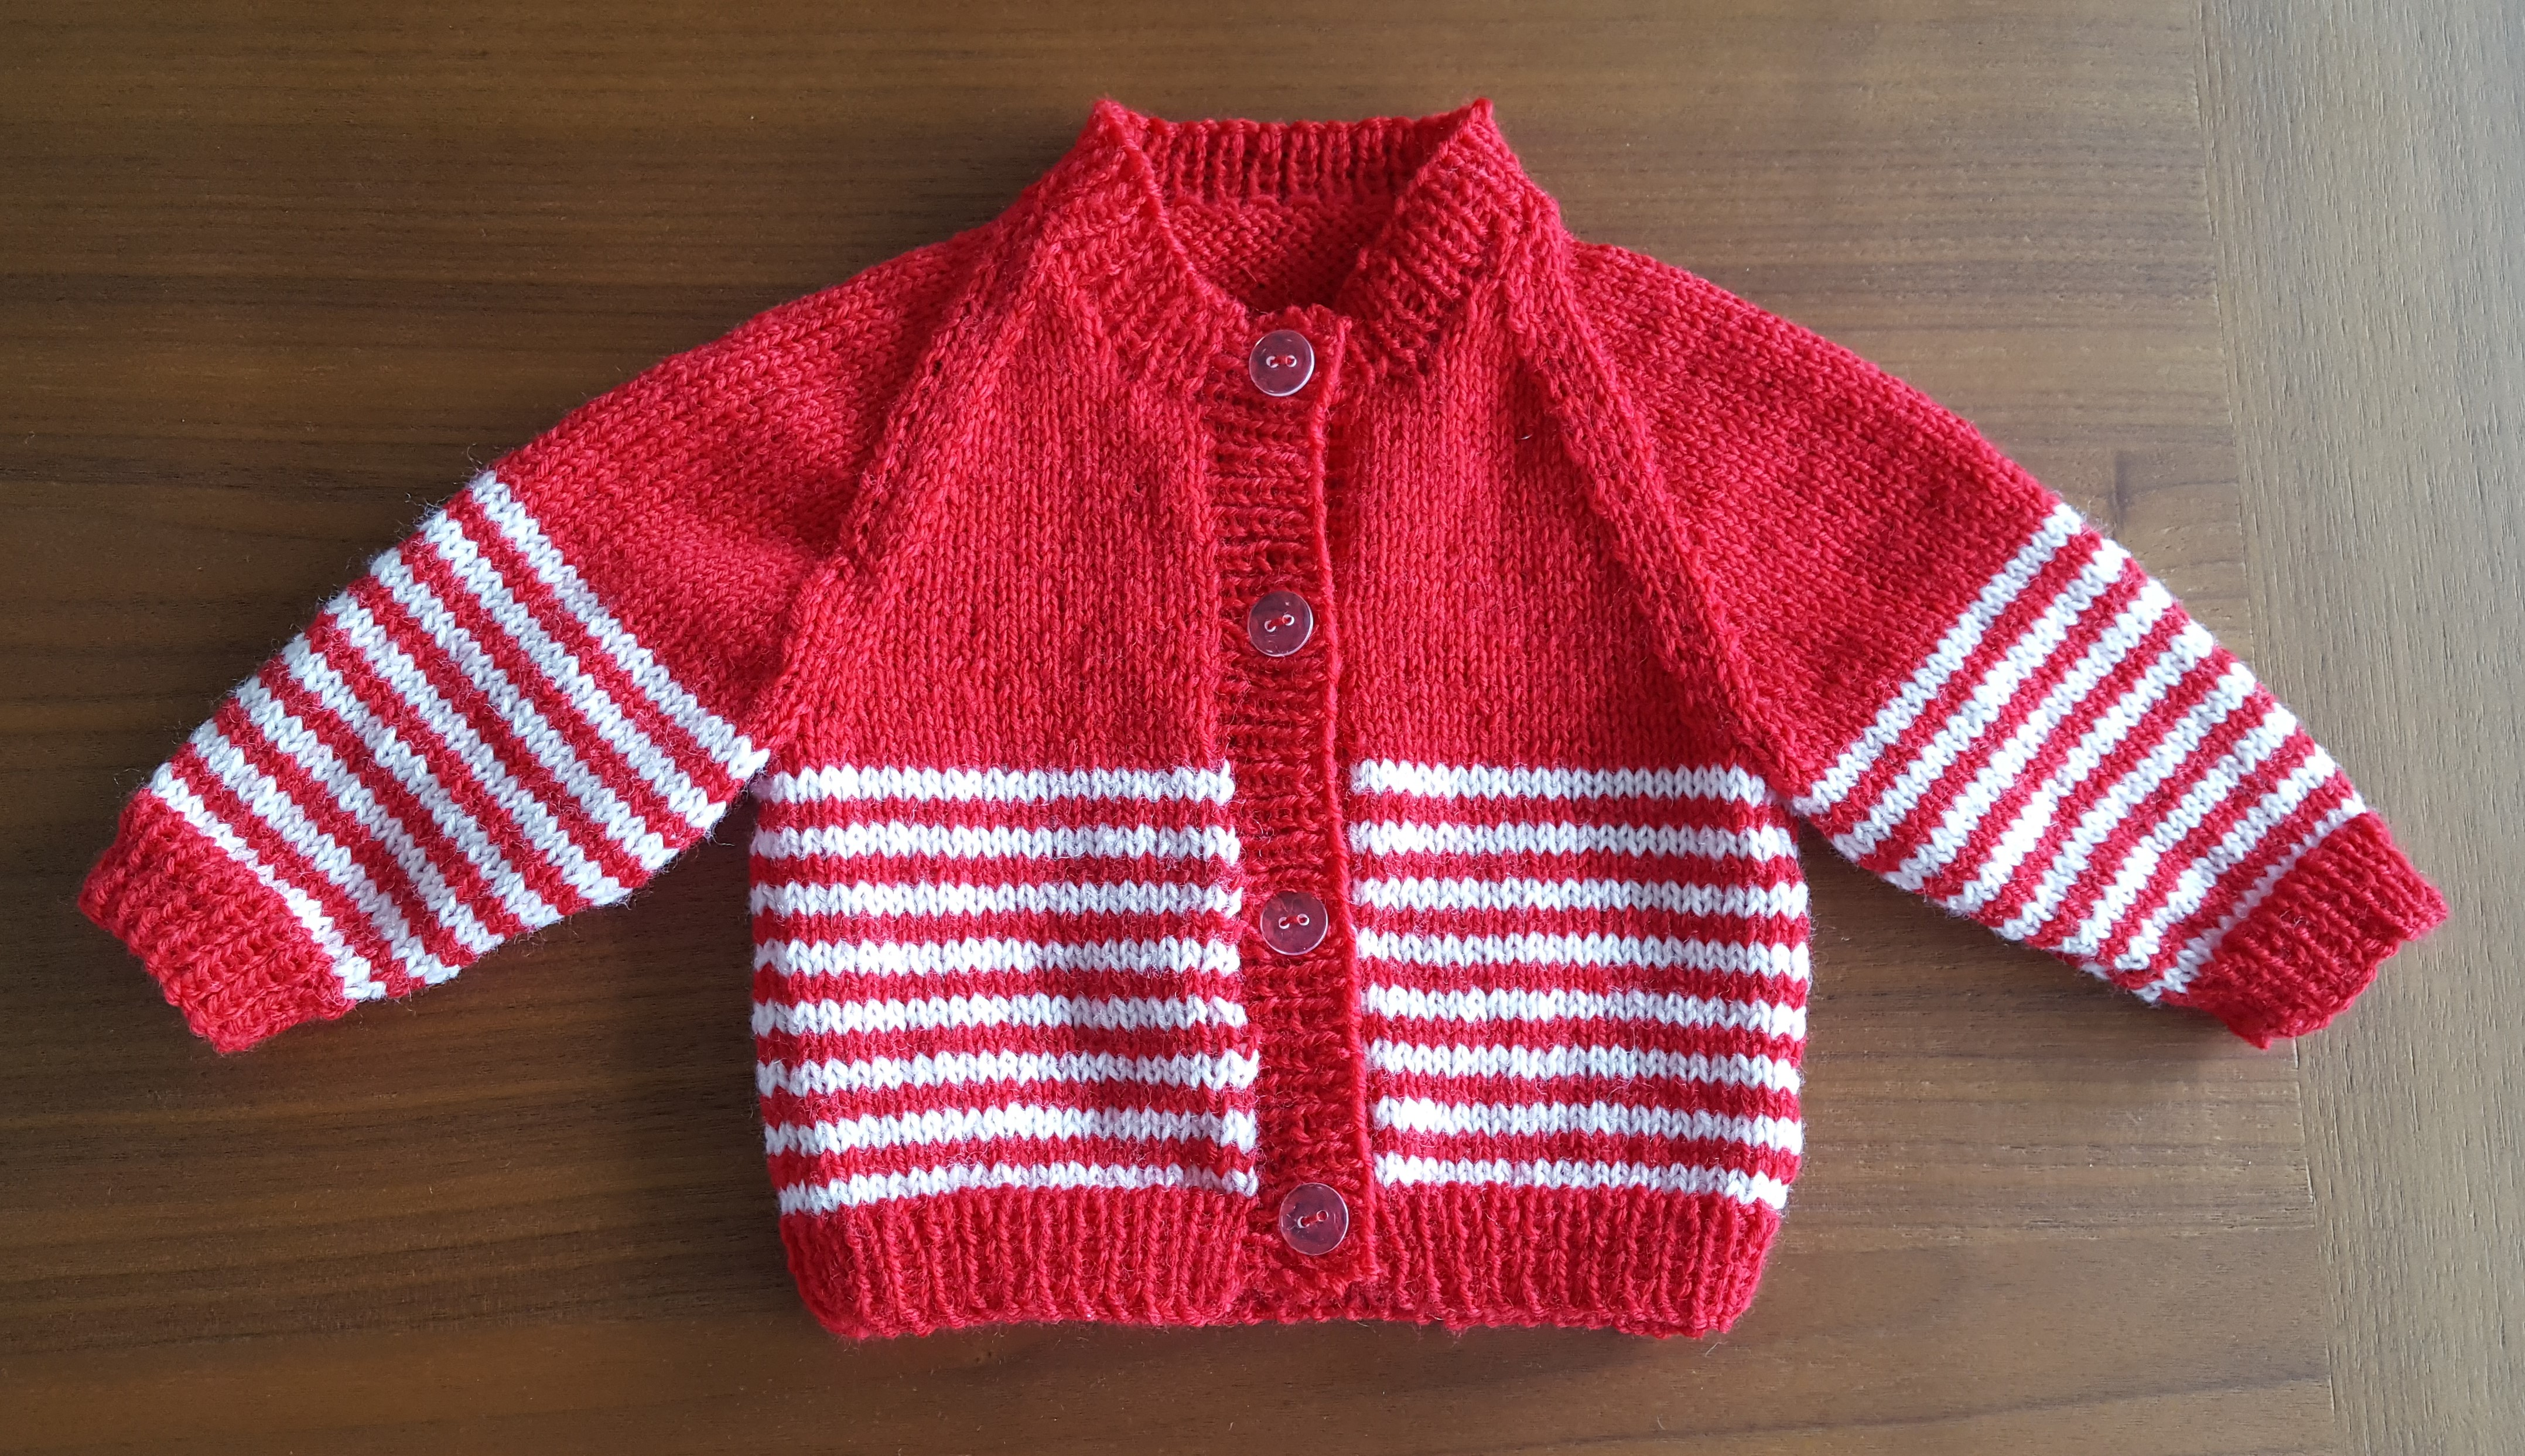 Knitting Patterns line Knitting Patterns for Baby Clothes Jasper